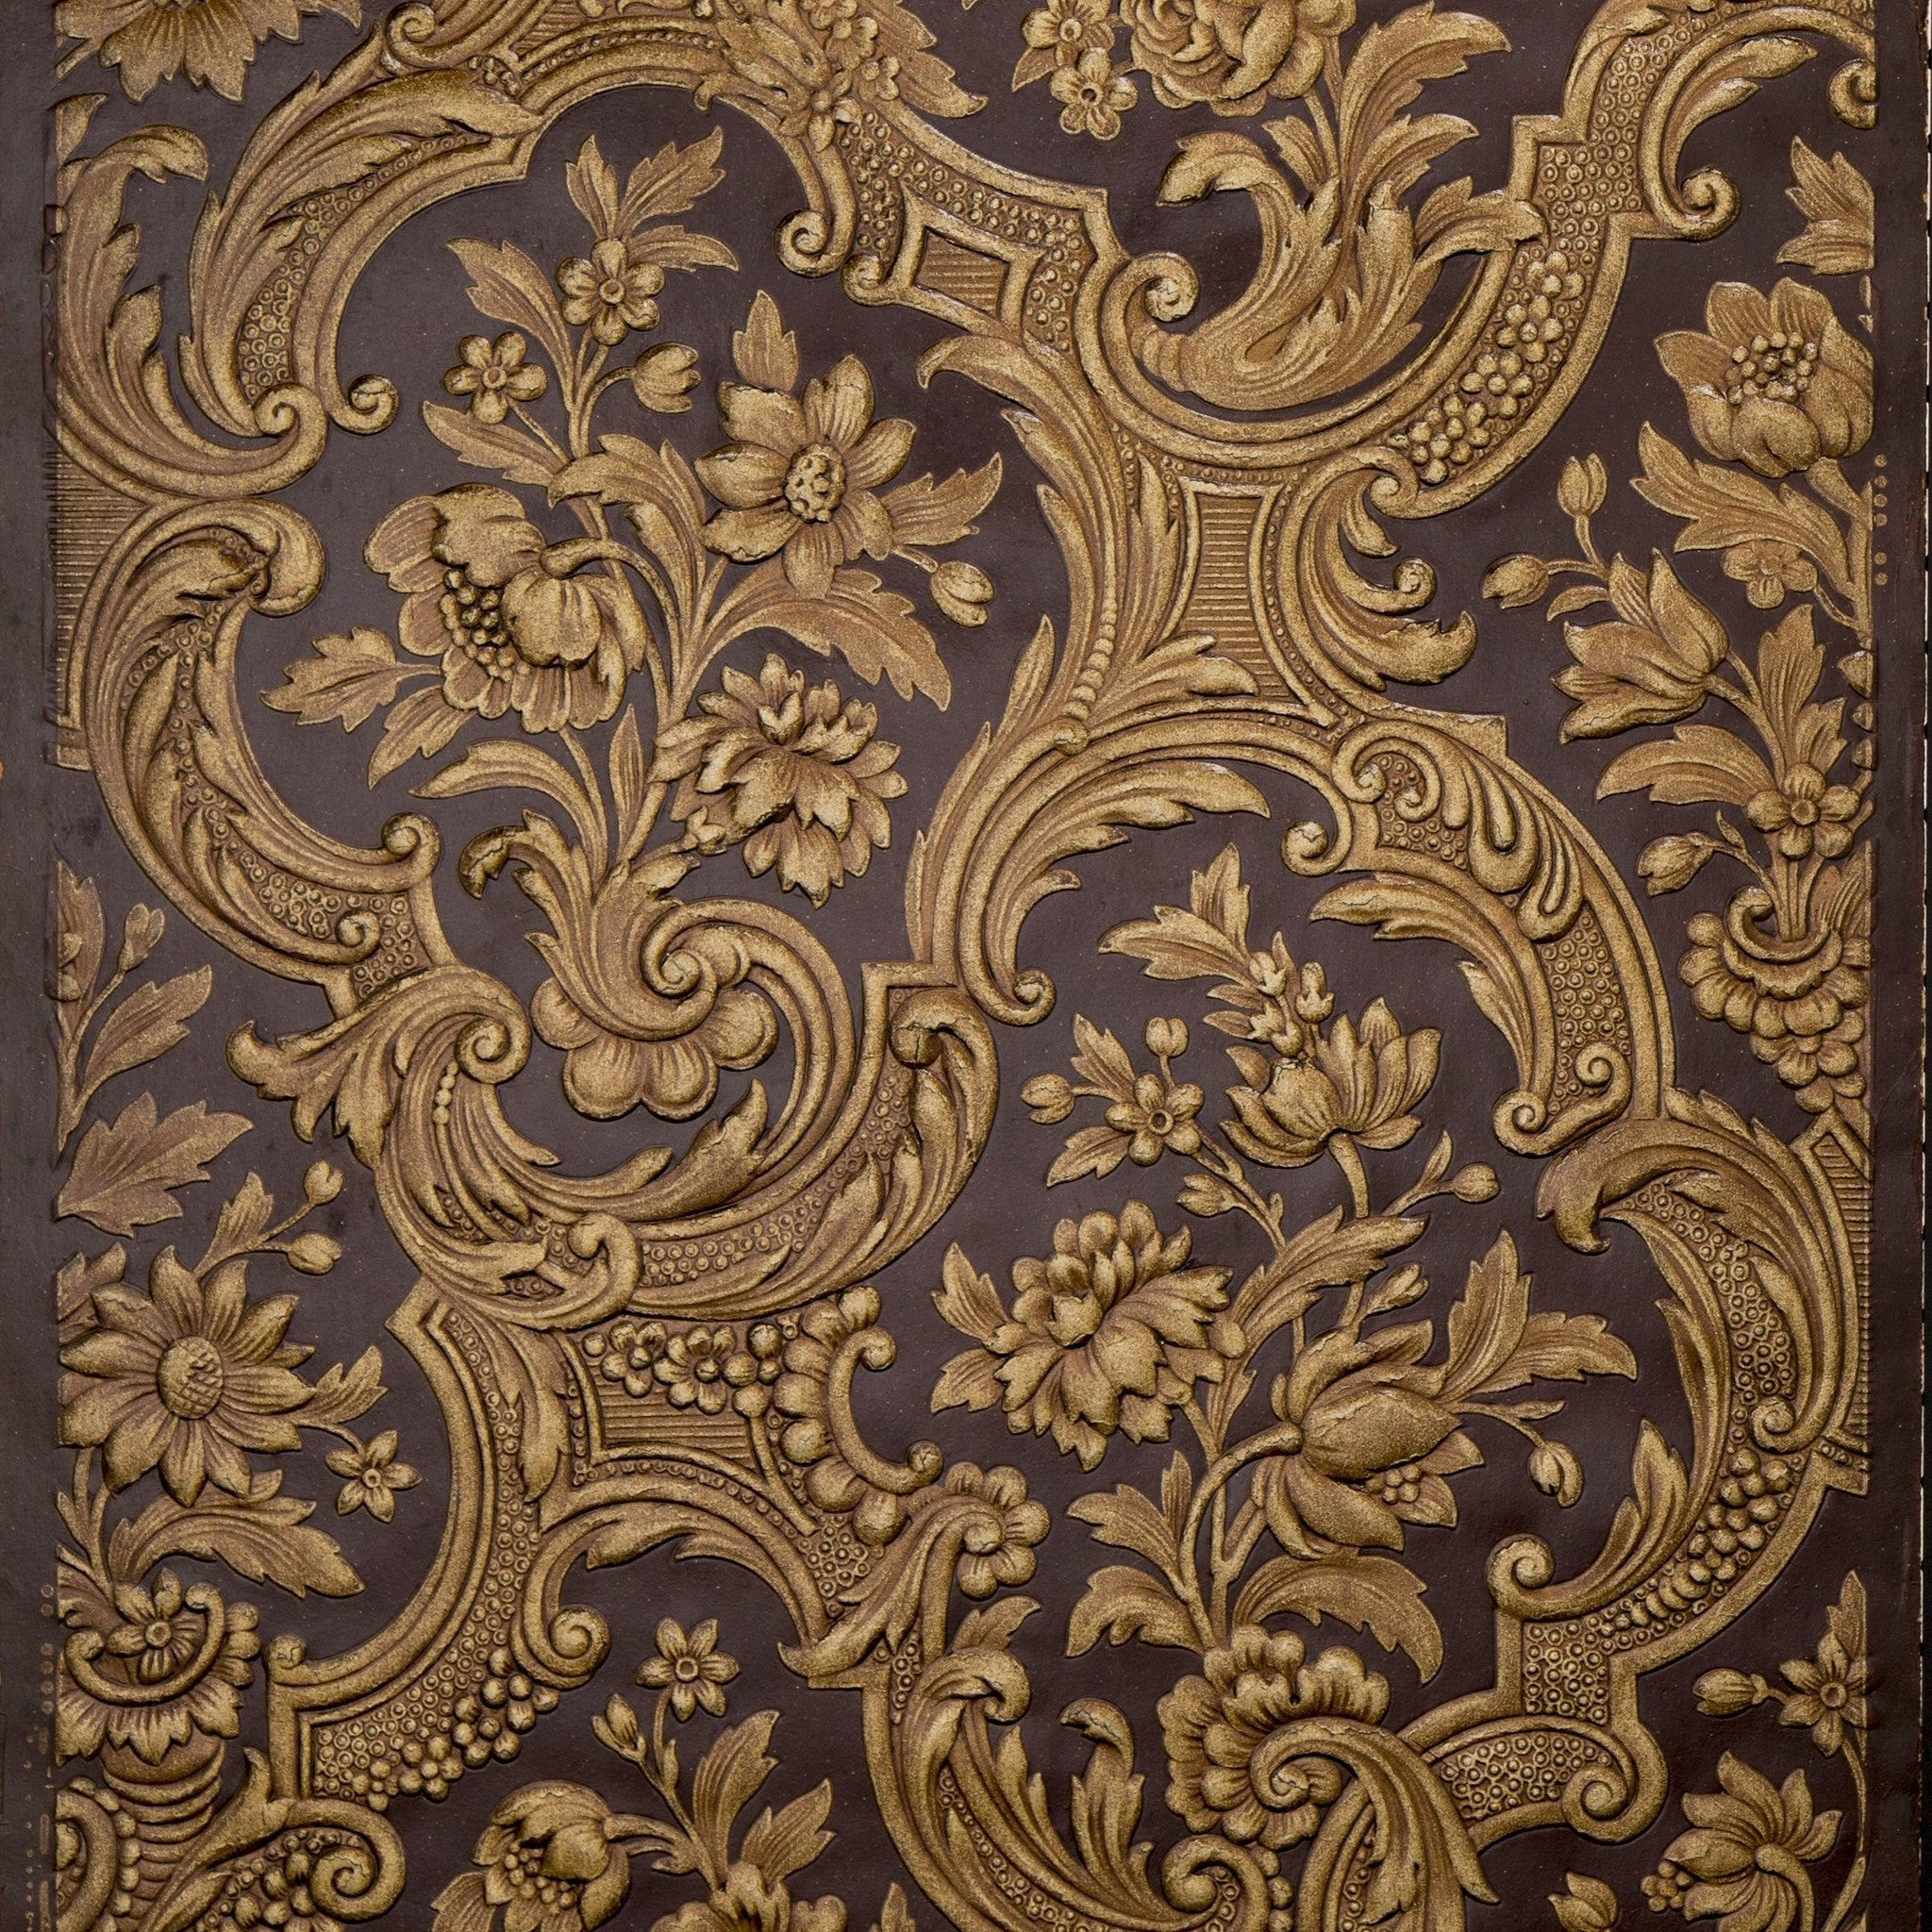 Deeply Embossed Rococo Floral